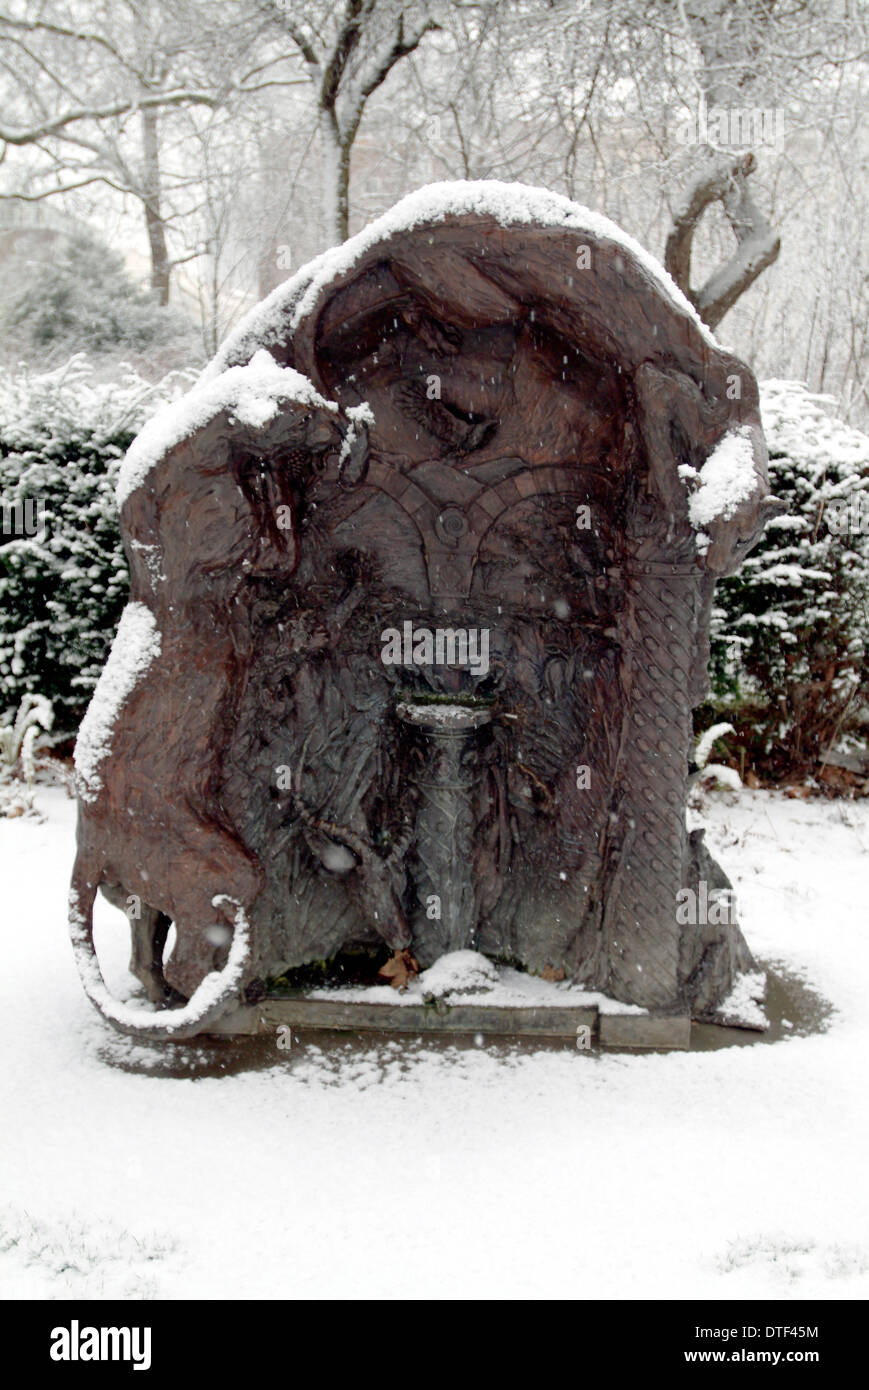 The west lawn ornament in winter. - Stock Image